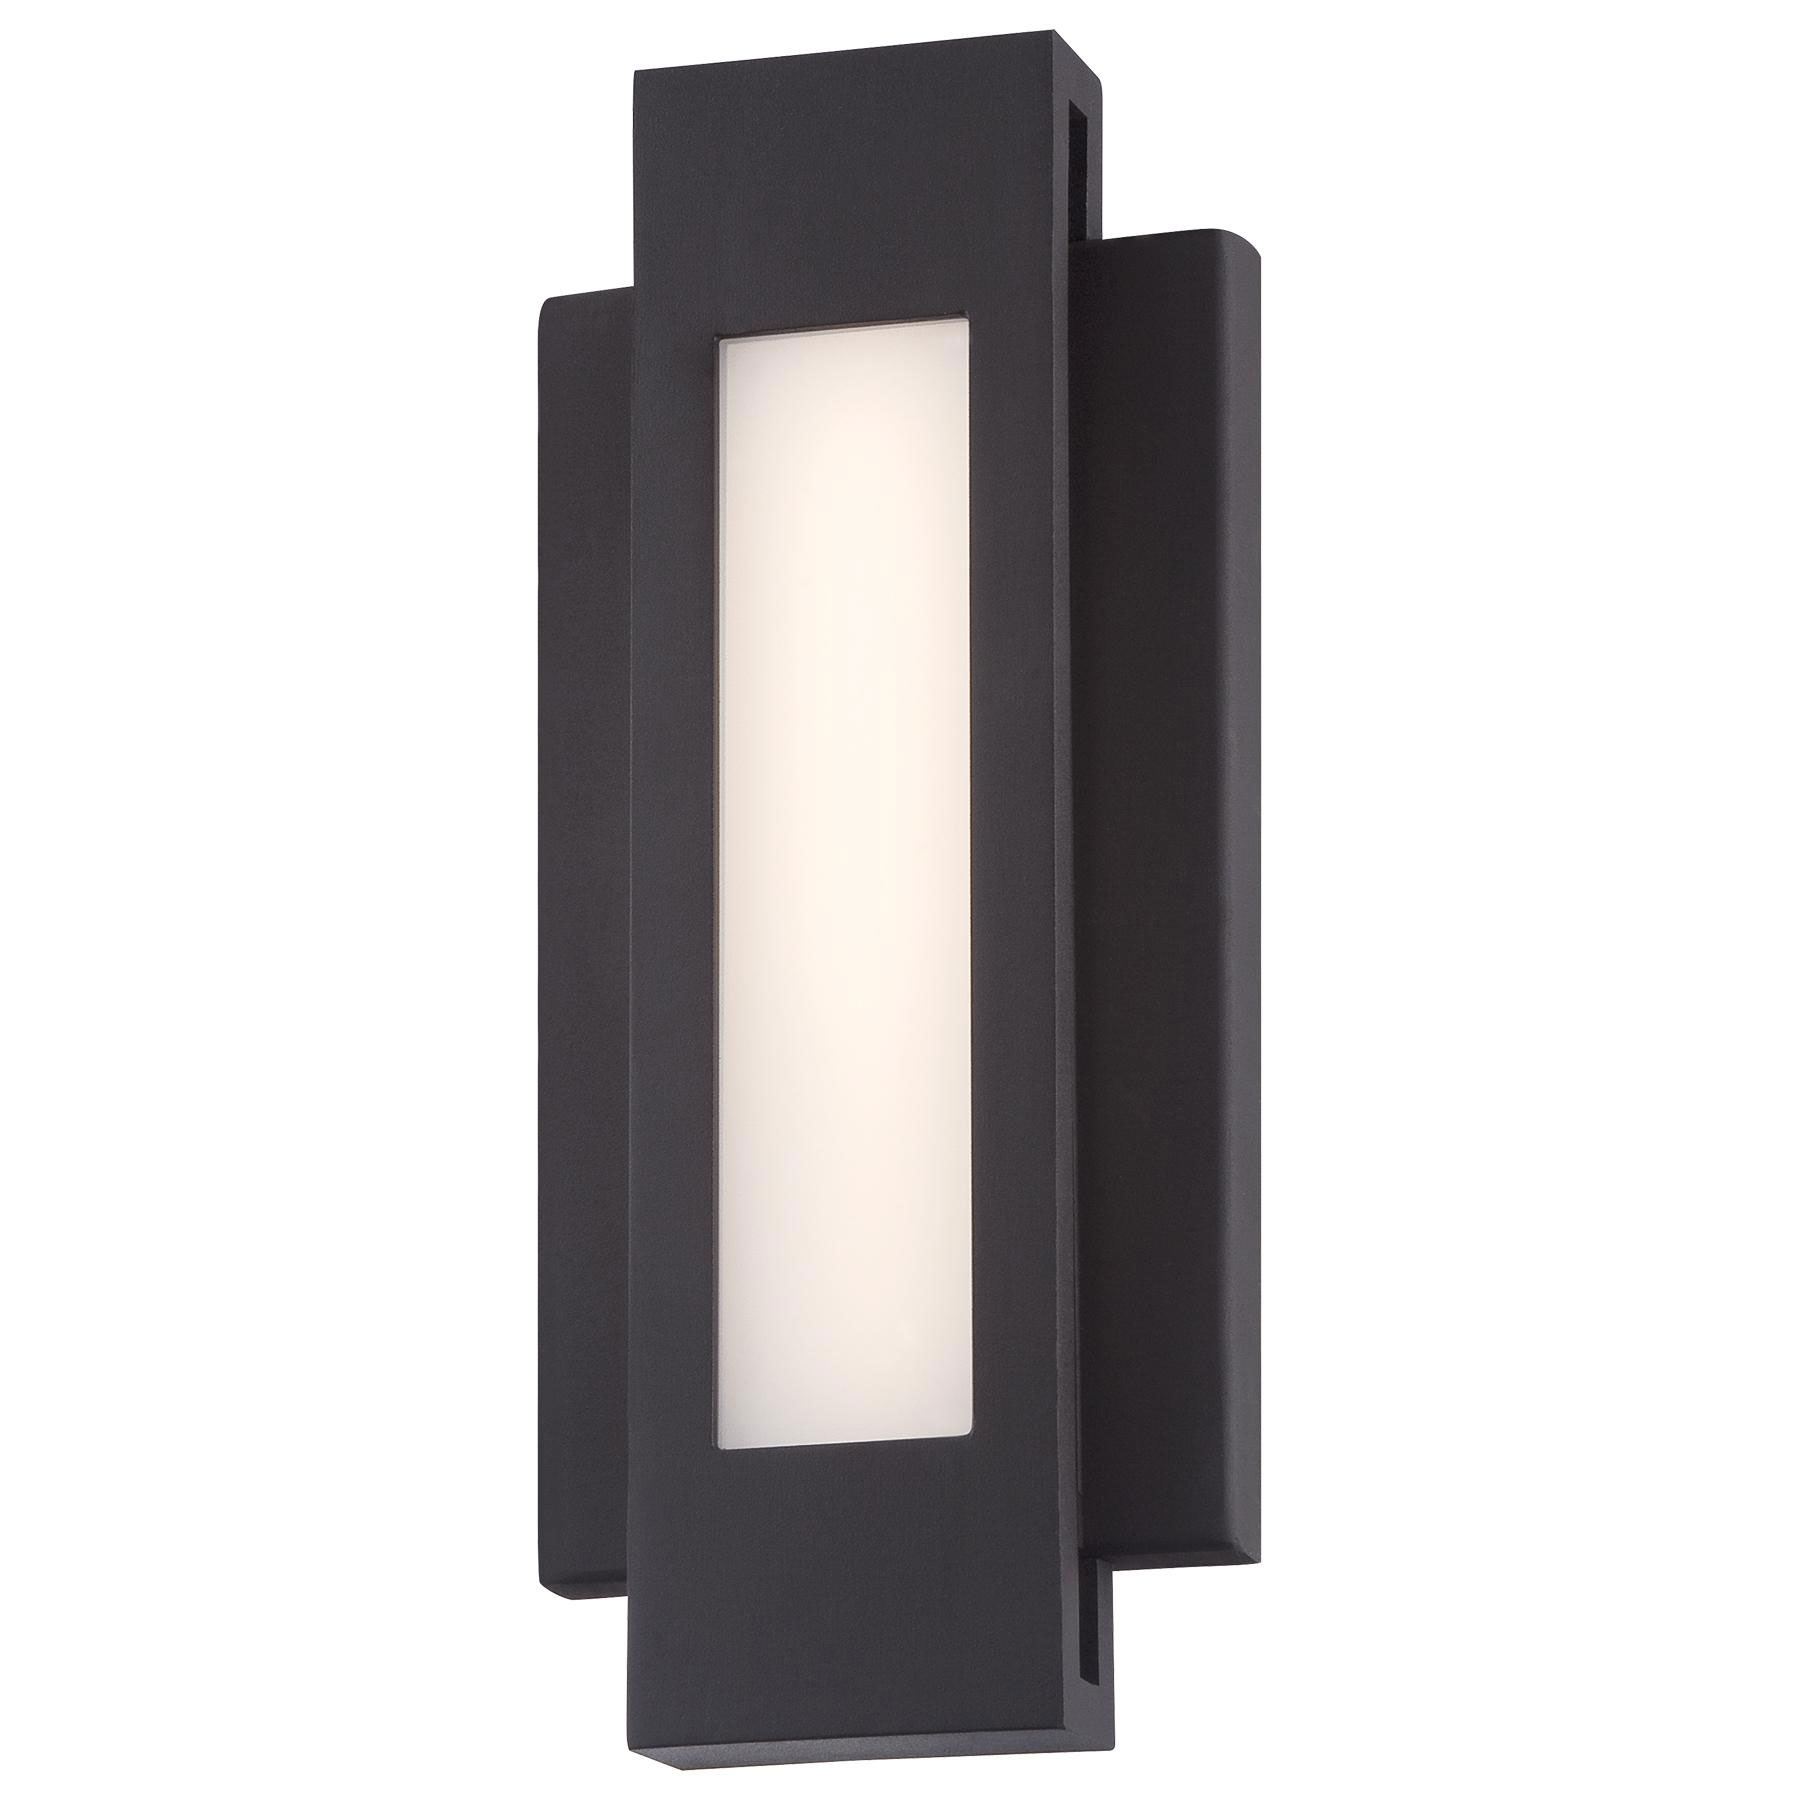 Insert outdoor led wall sconce by george kovacs p1230 286 l workwithnaturefo